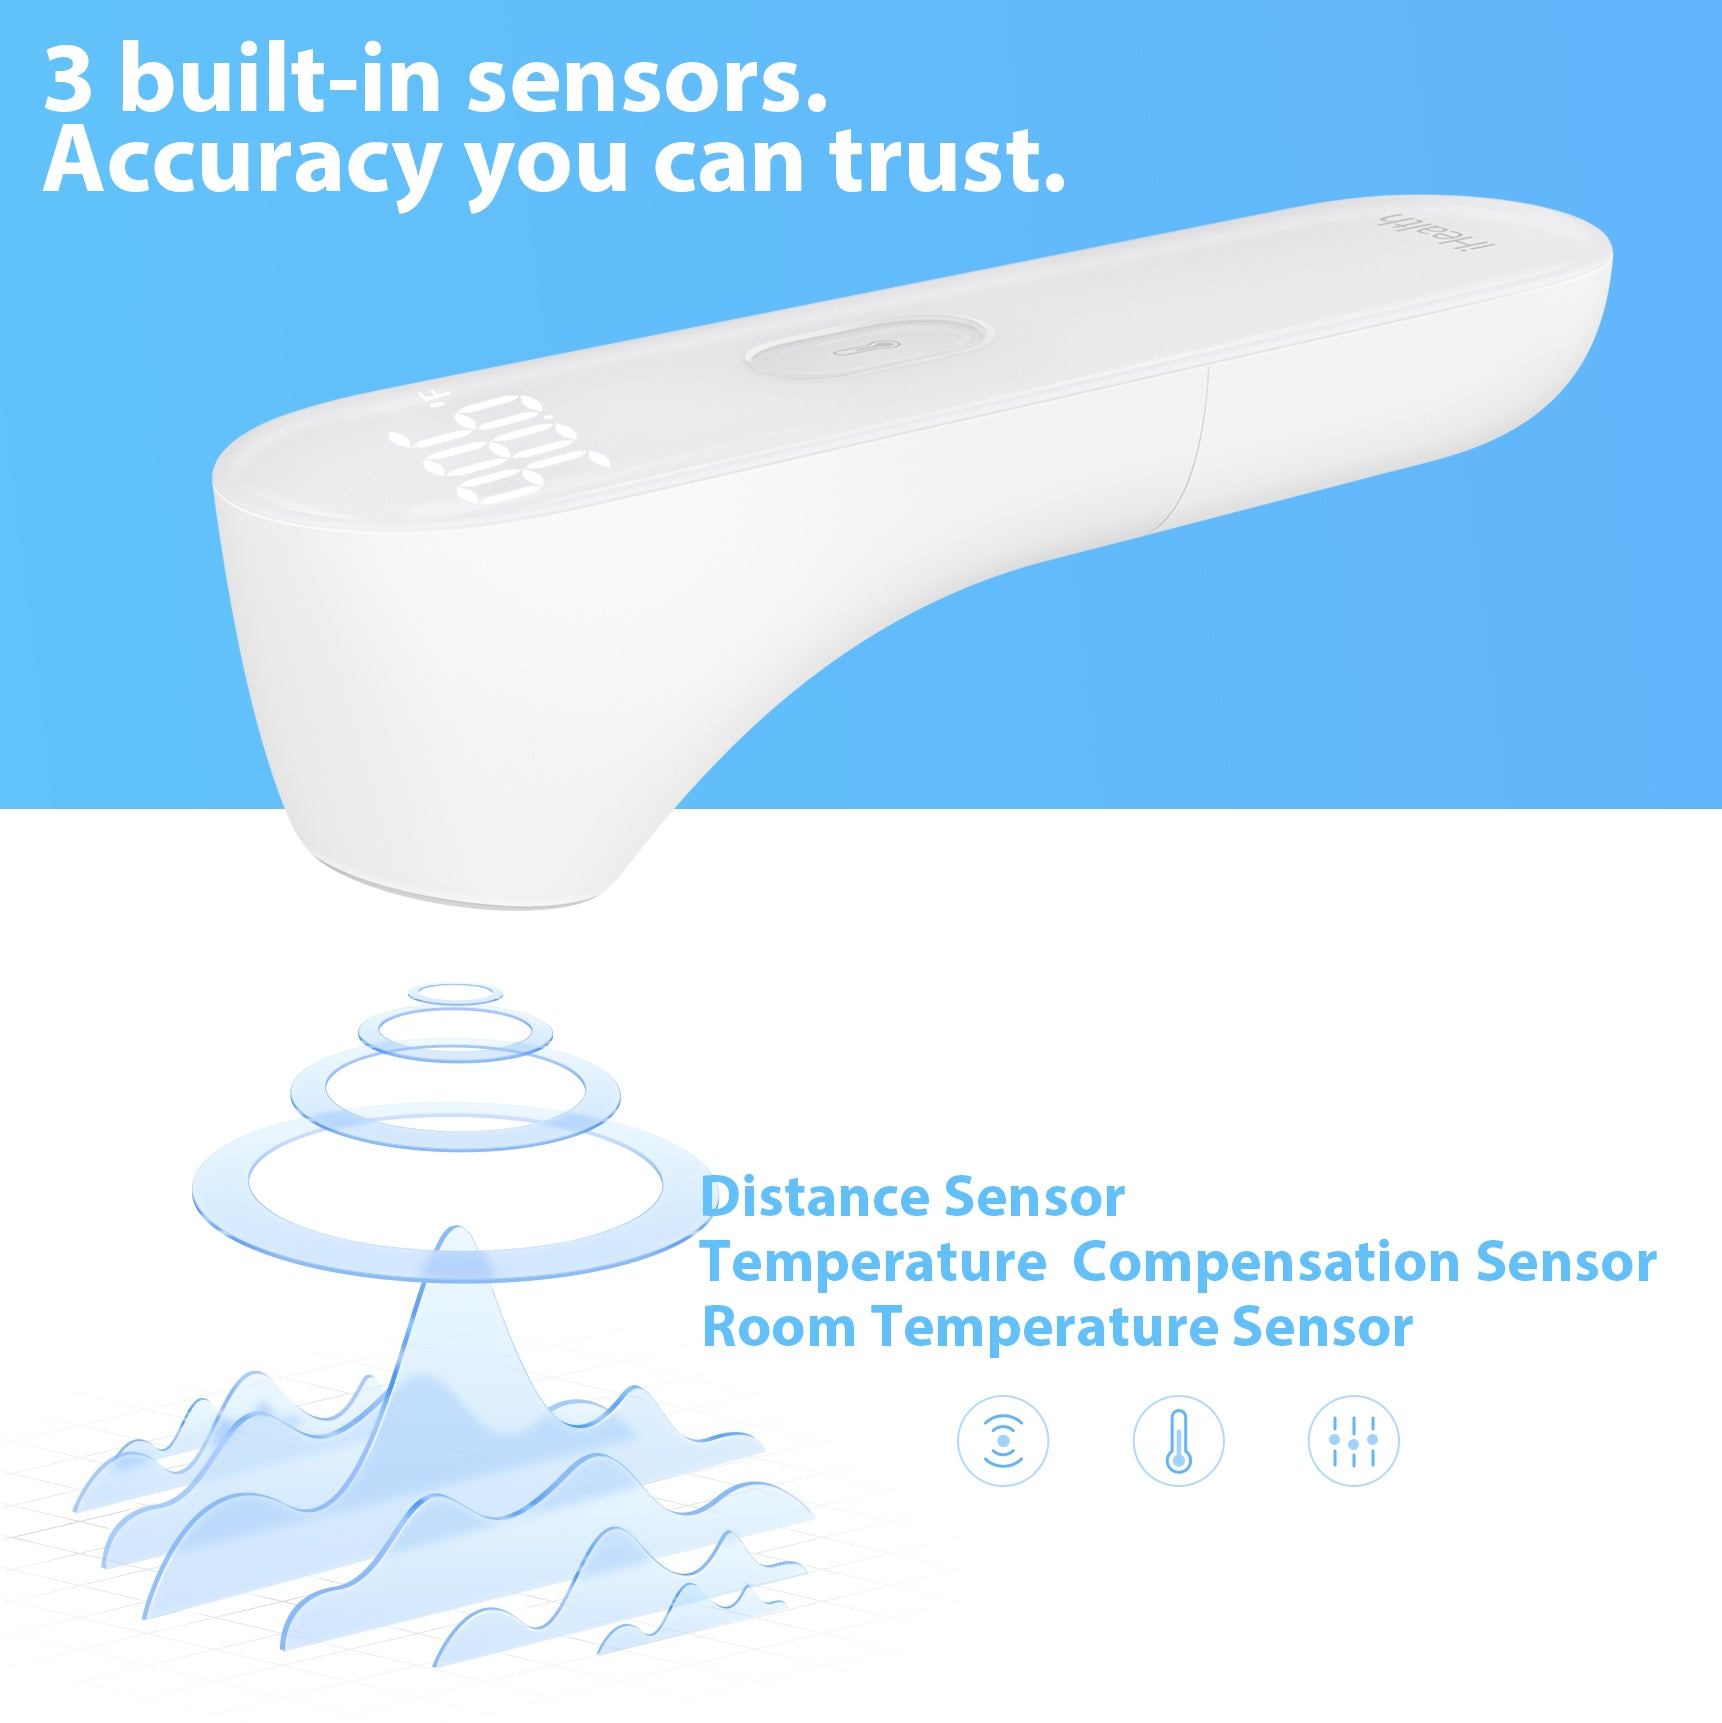 Infographic about iHealth PT3 non-contact infrared forehead thermometer's distance sensor, temperature compensation sensor, and room temperature sensors